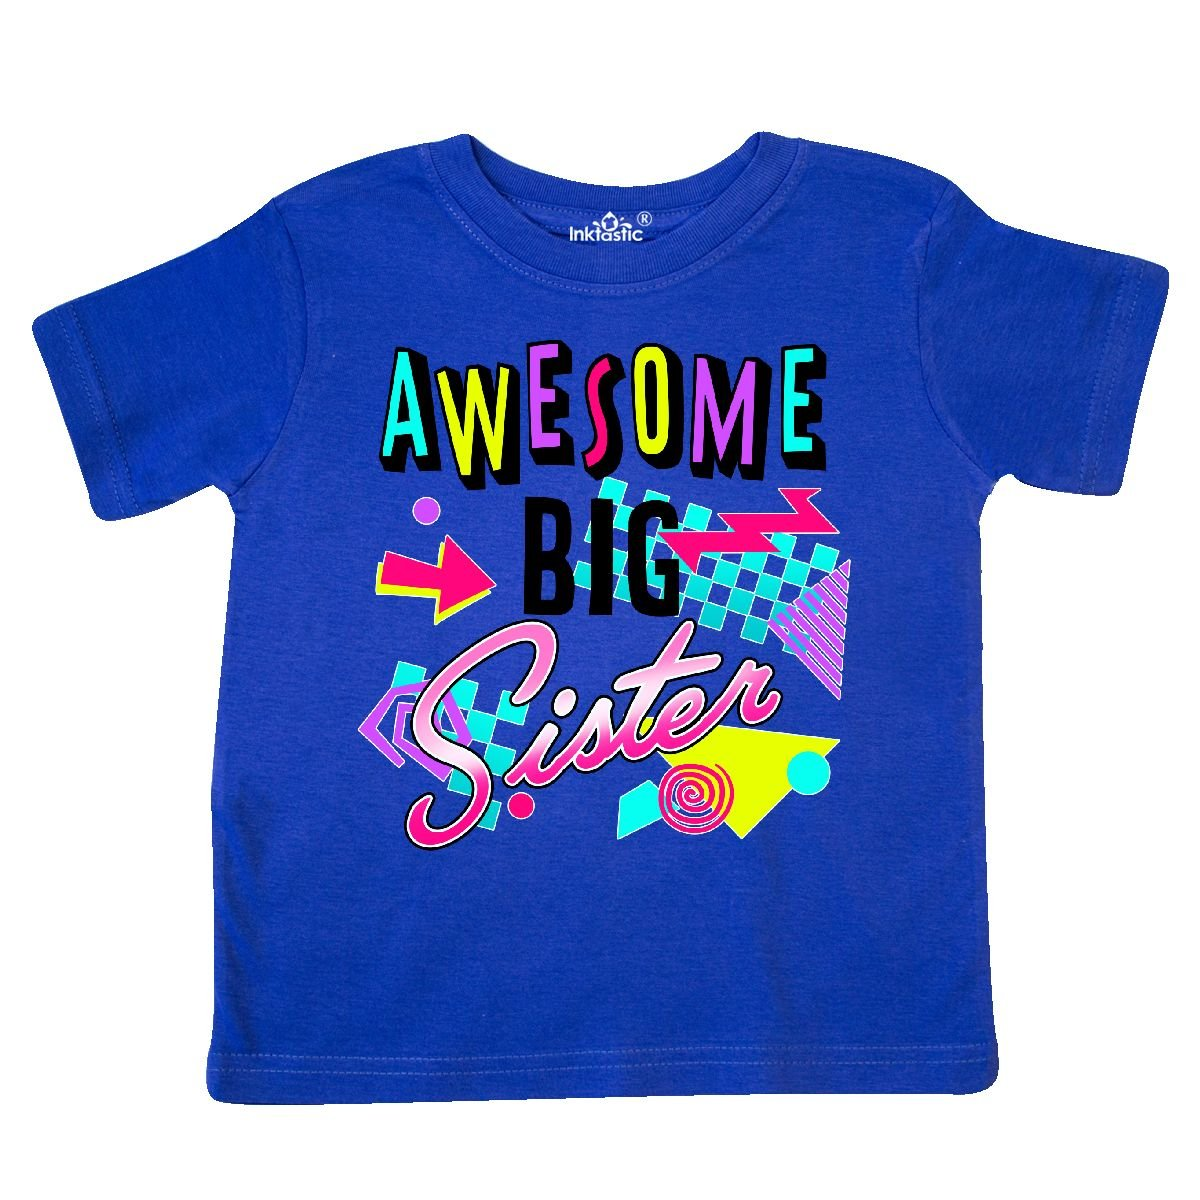 80s Retro Style Toddler T-Shirt inktastic Awesome Big Sister